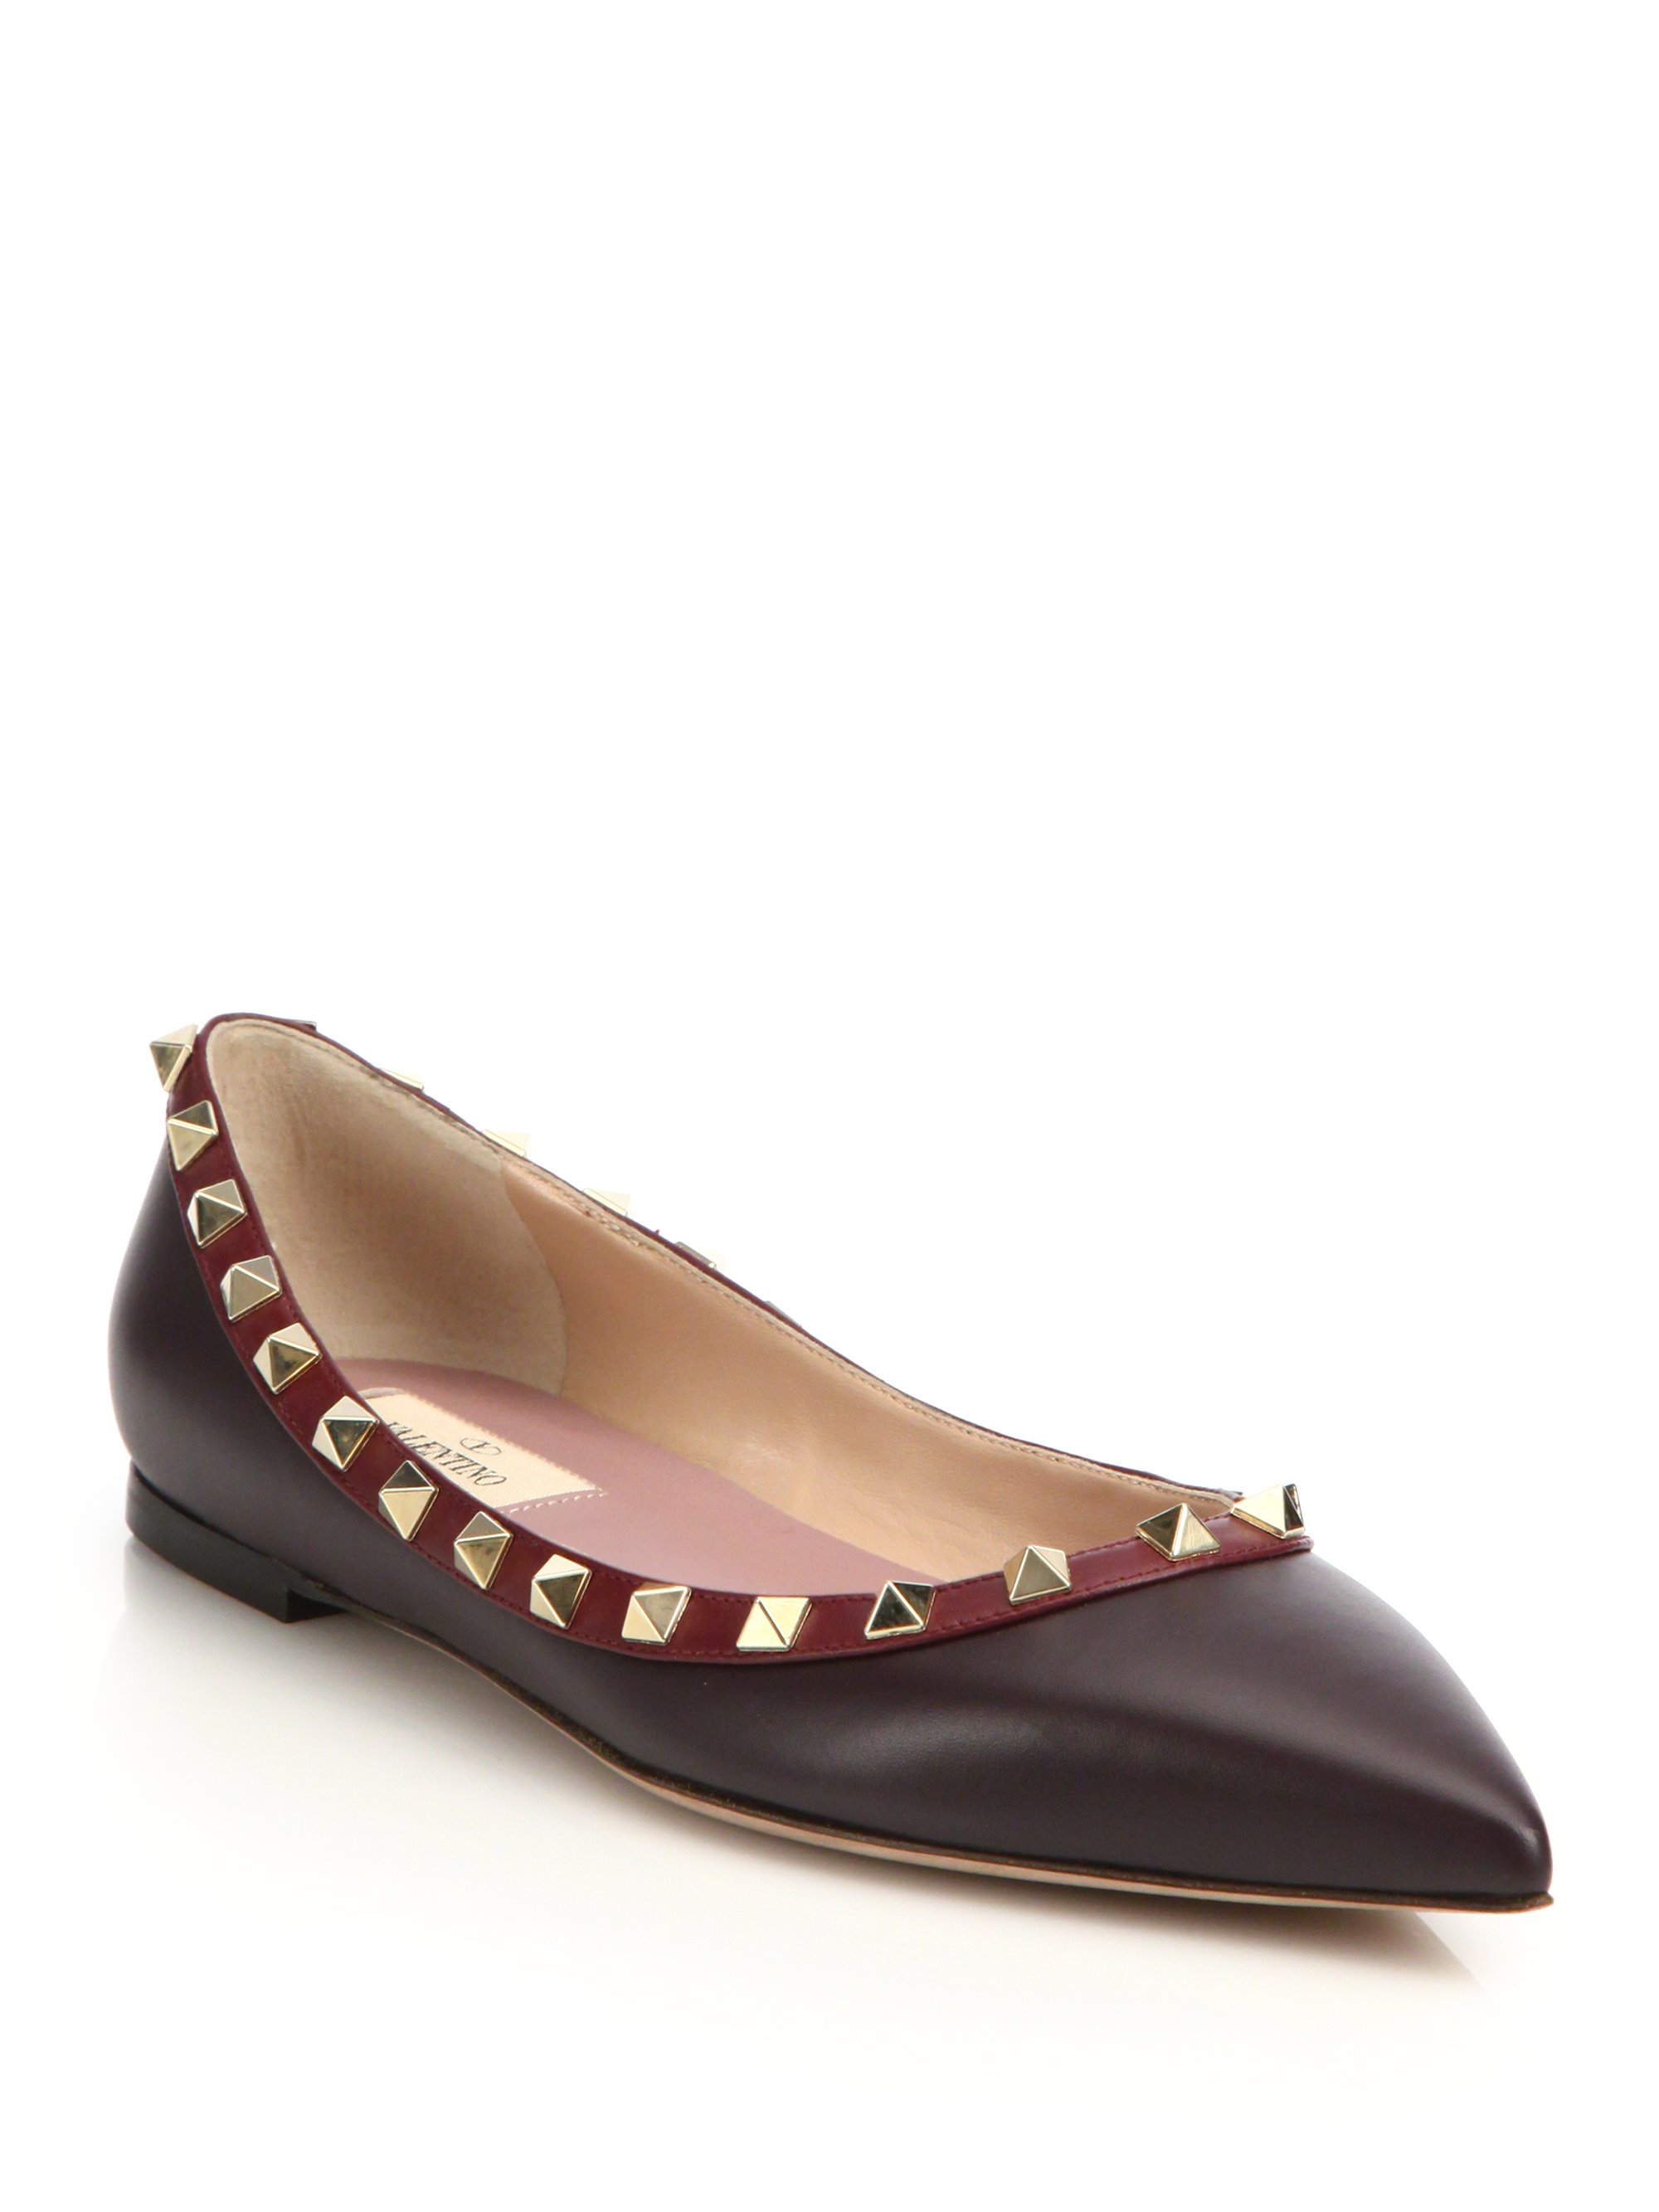 Valentino Rockstud Colorblock Leather Flats in Red | Lyst